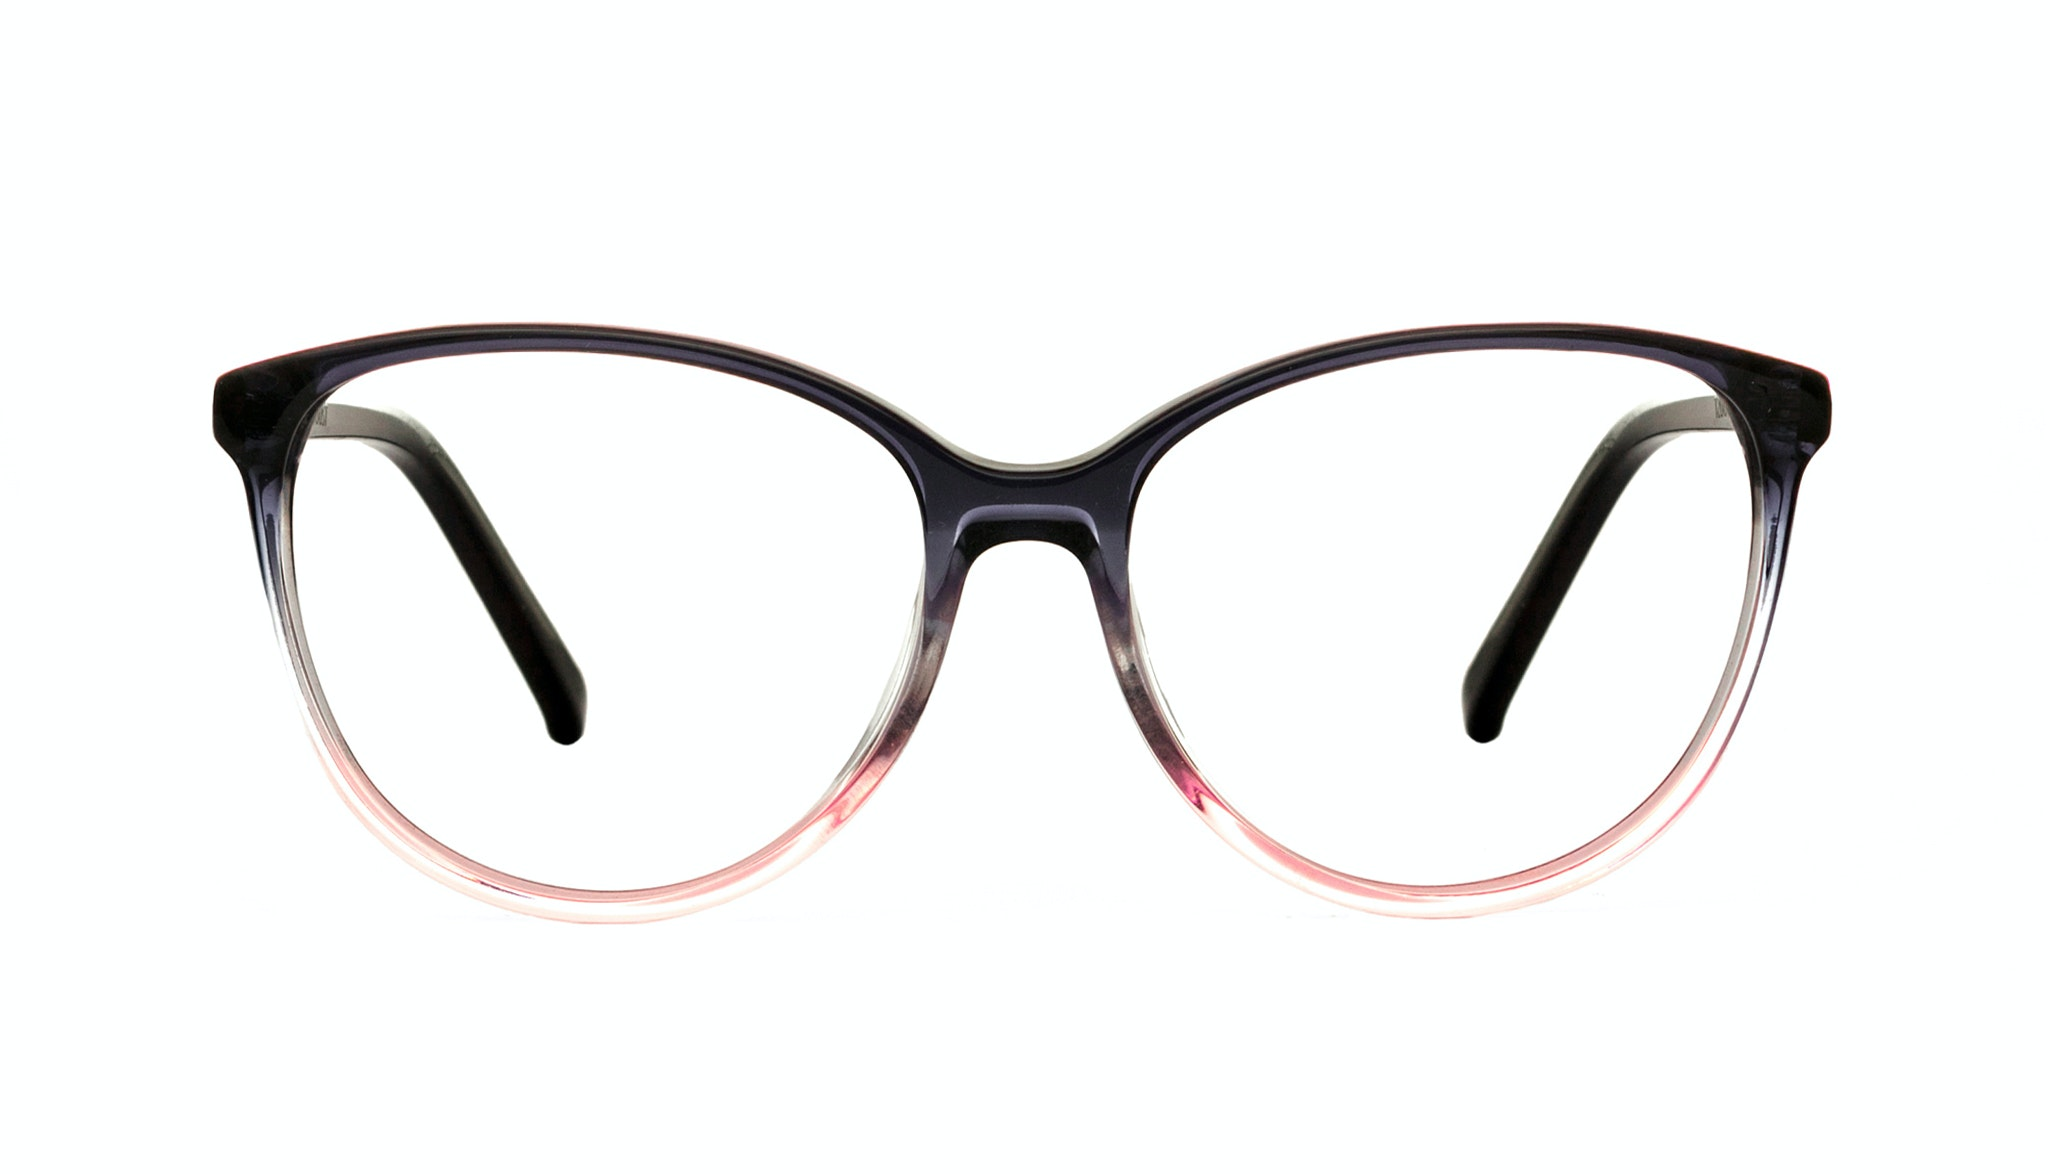 Affordable Fashion Glasses Cat Eye Round Eyeglasses Women Imagine Pink Dust